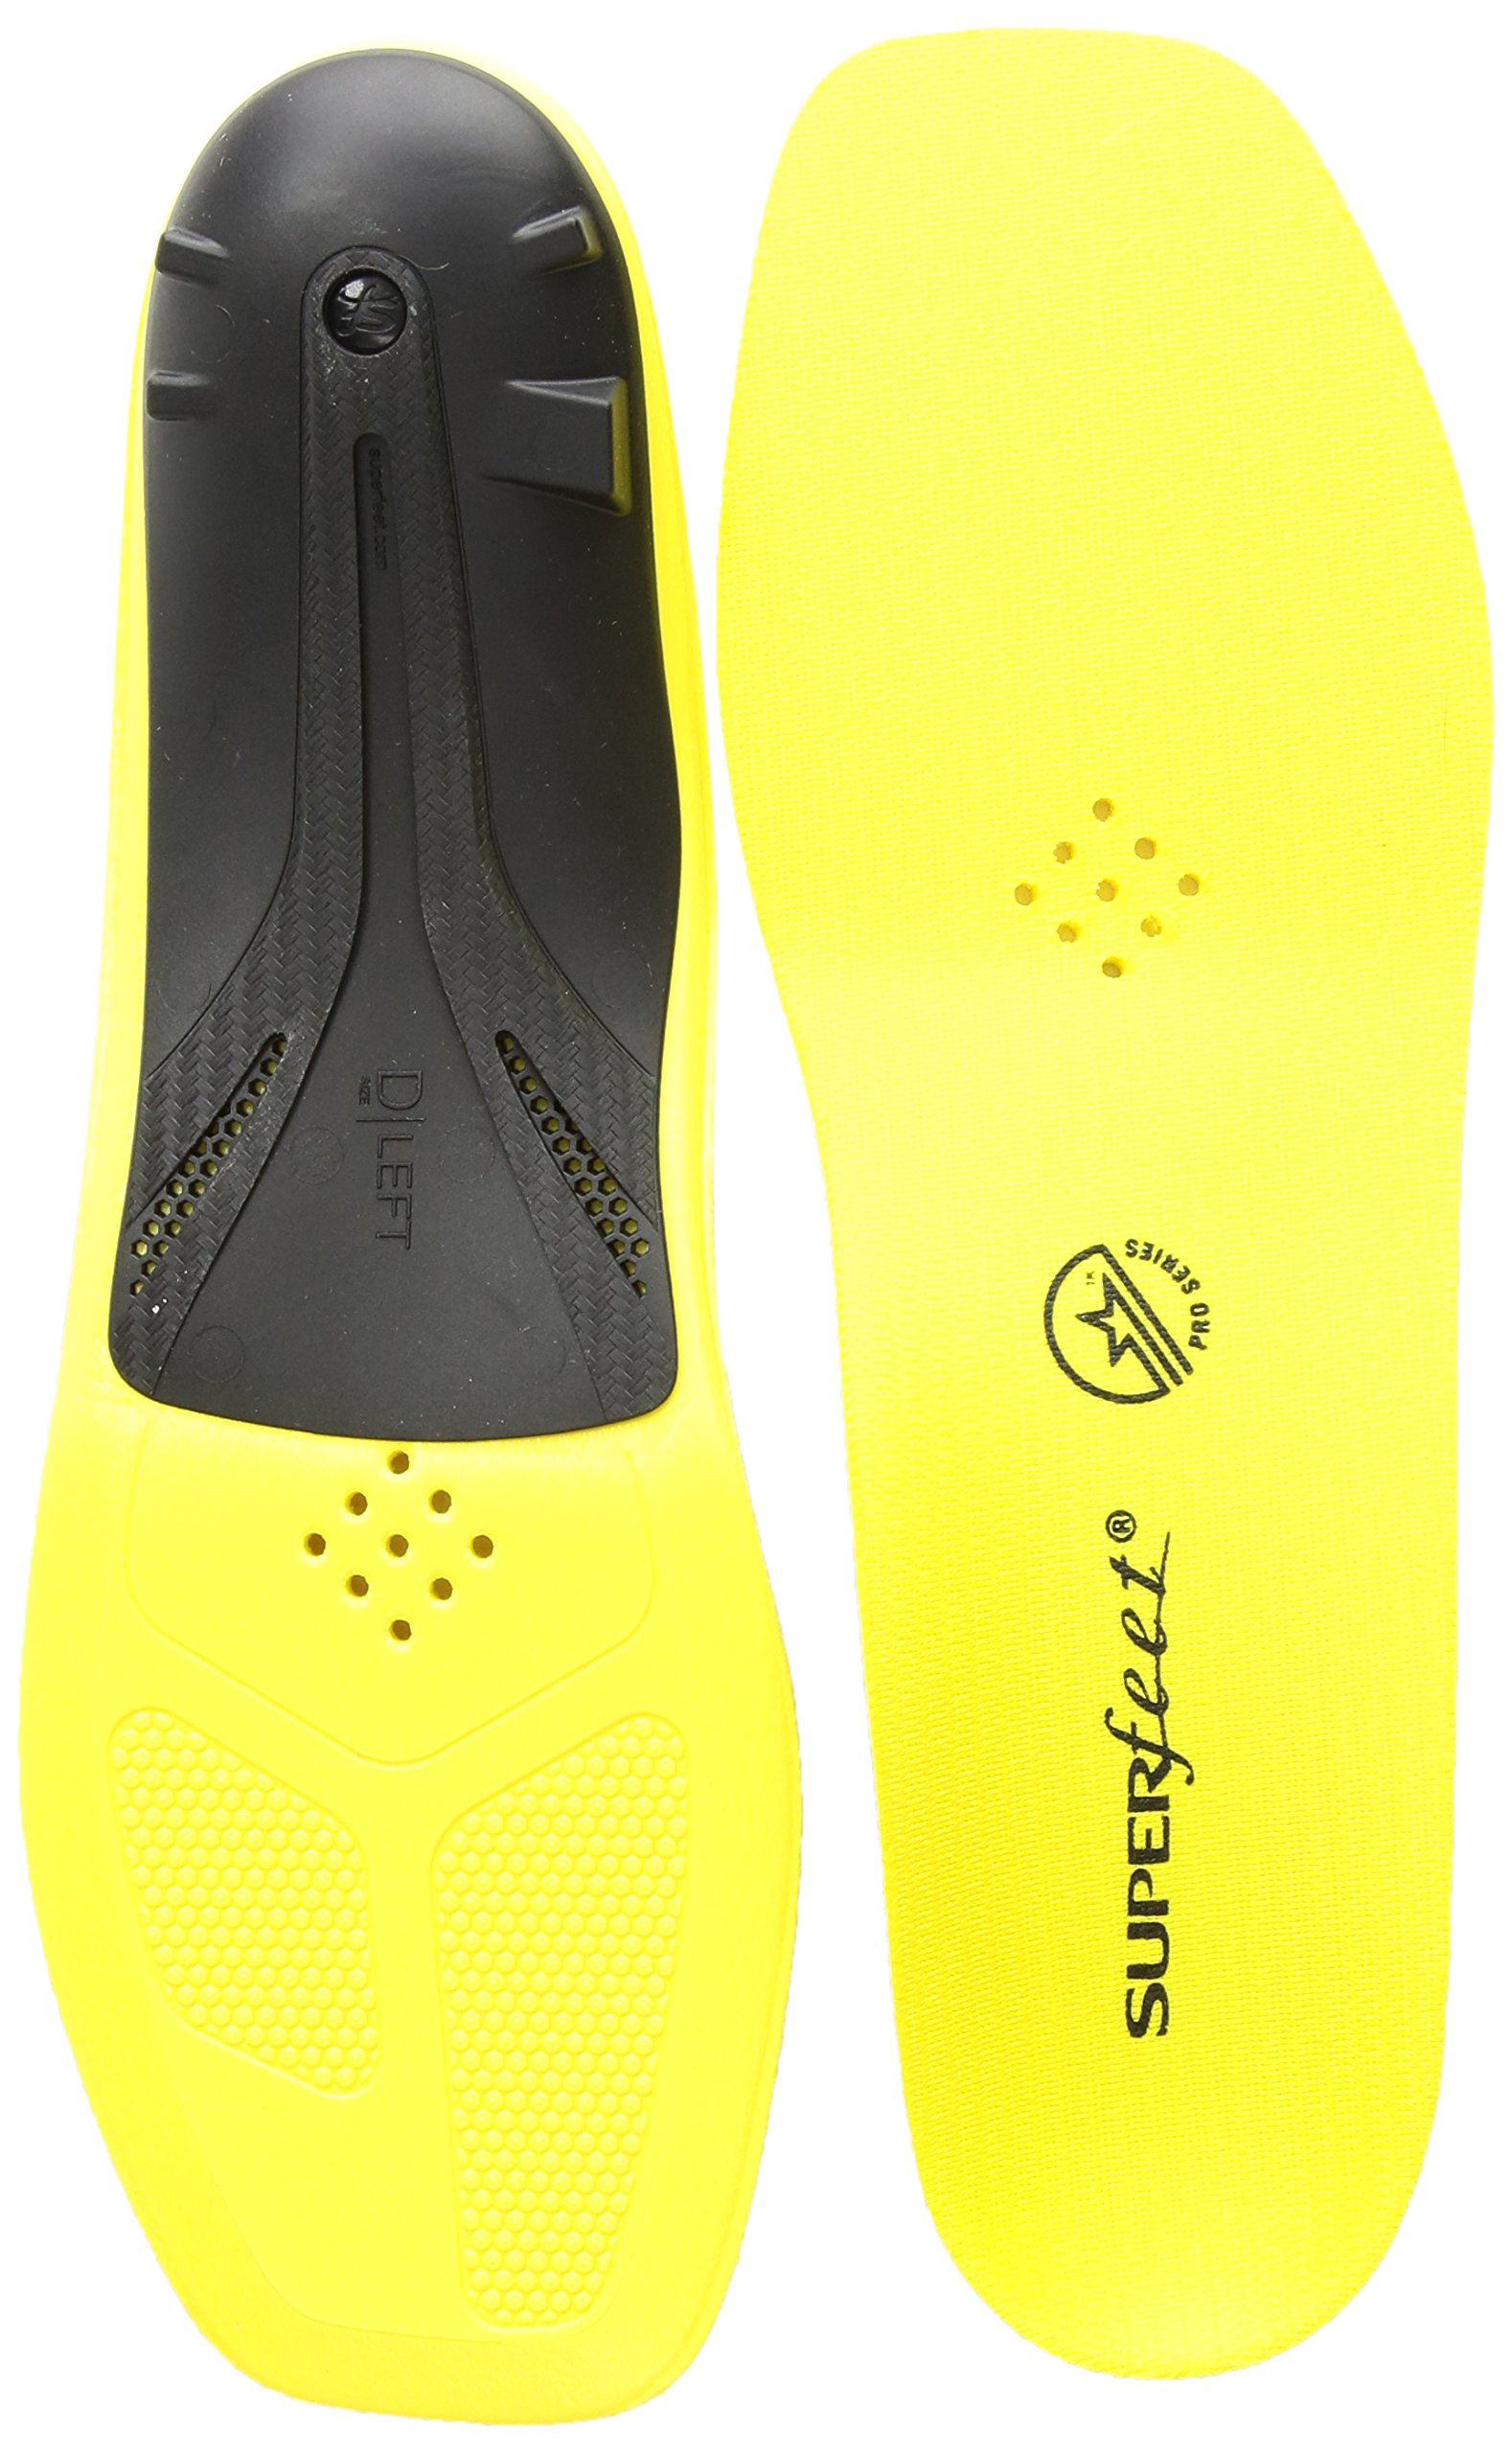 Superfeet, CARBON Pro Hockey, Carbon Fiber Professional Performance Hockey Skate Insoles, Unisex, Blaze Yellow, Large E: Skate 9-10, US